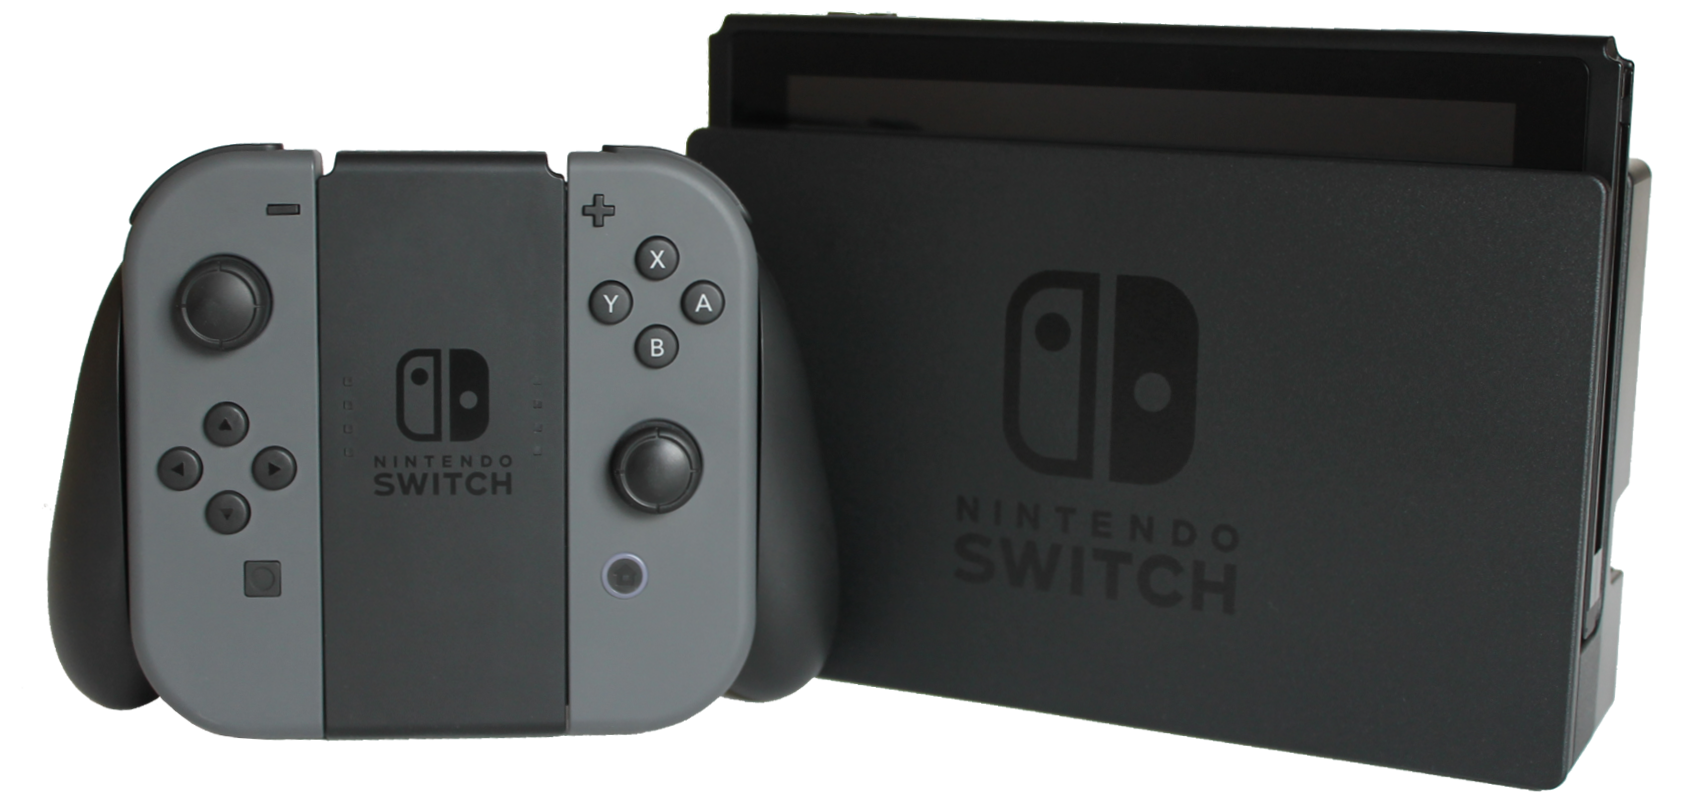 File:Nintendo Switch Console.png.